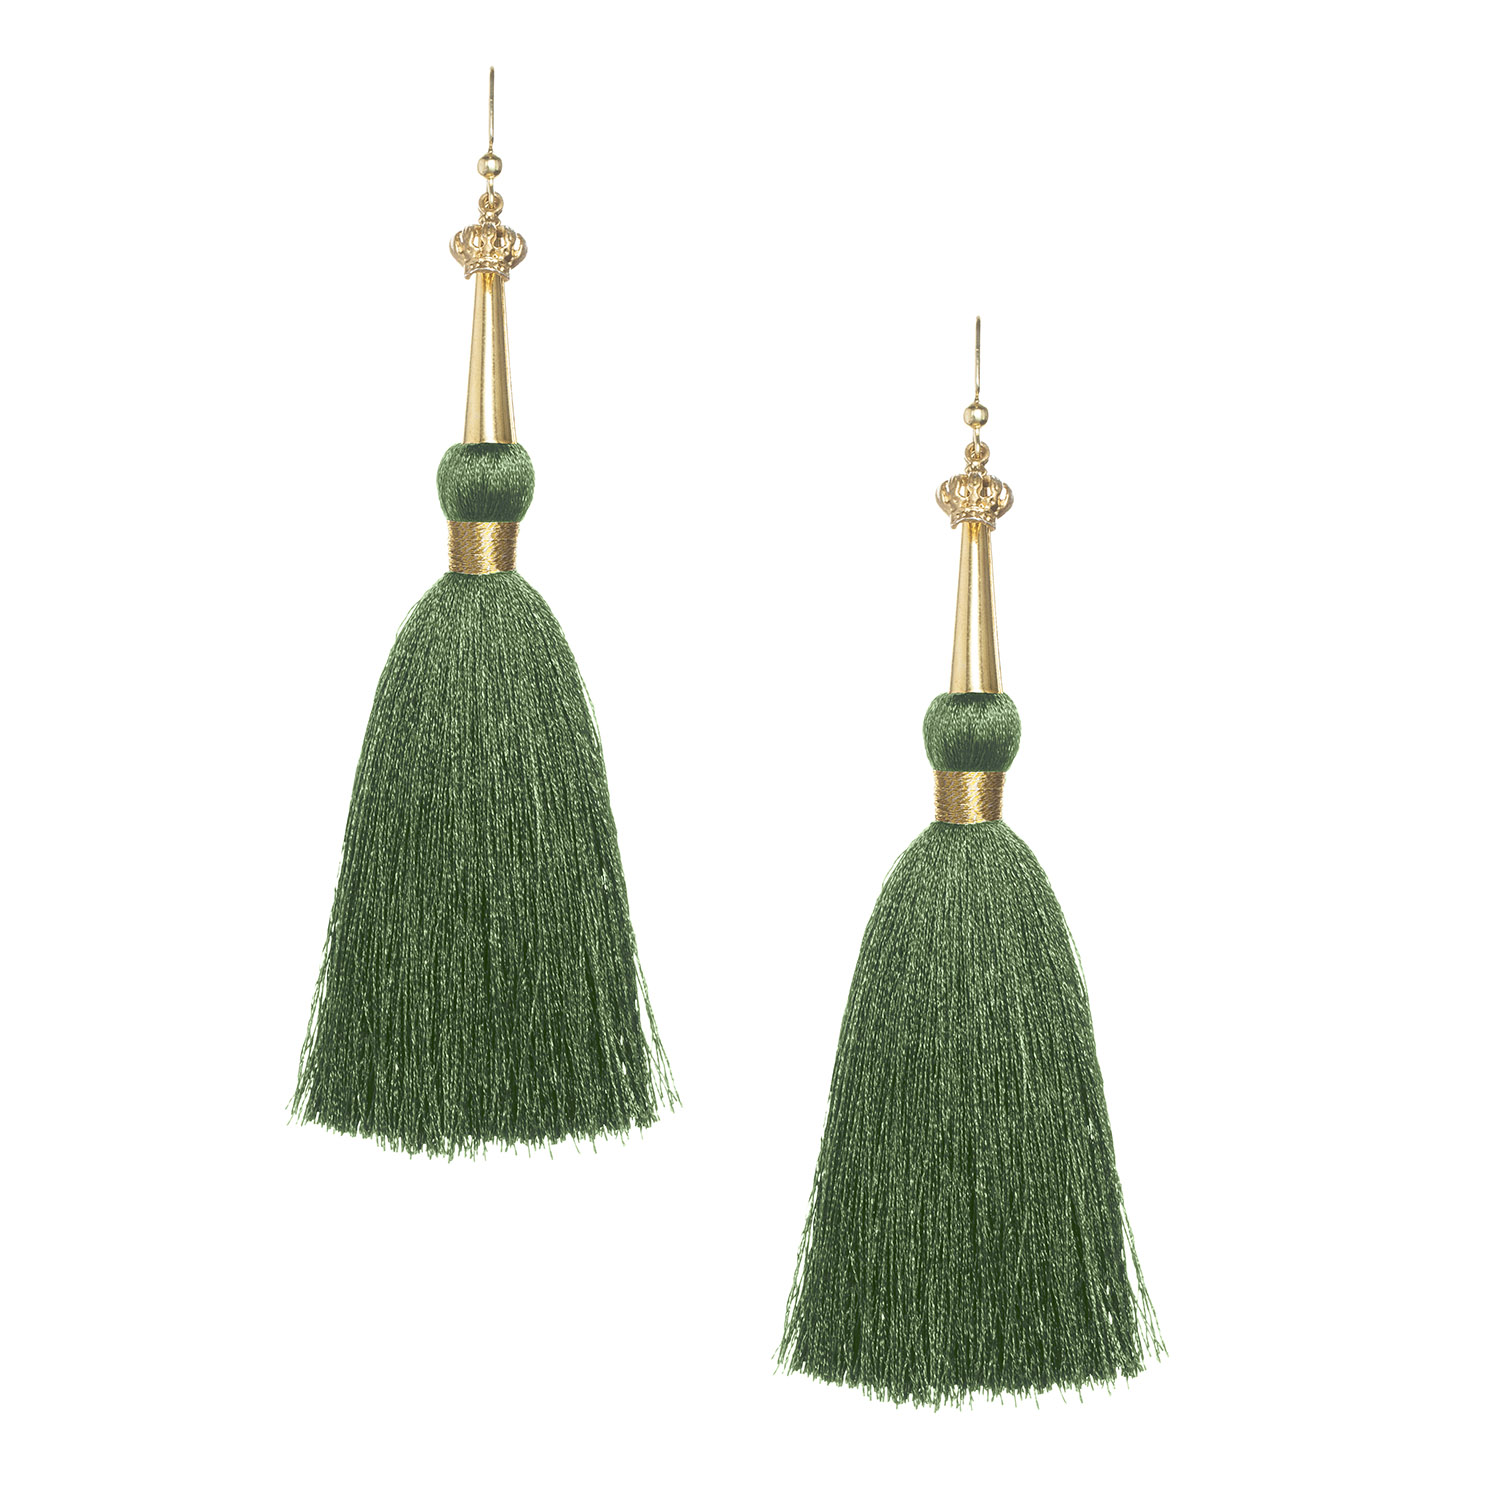 Olive Green Silk Tel Earrings With Gold Cap